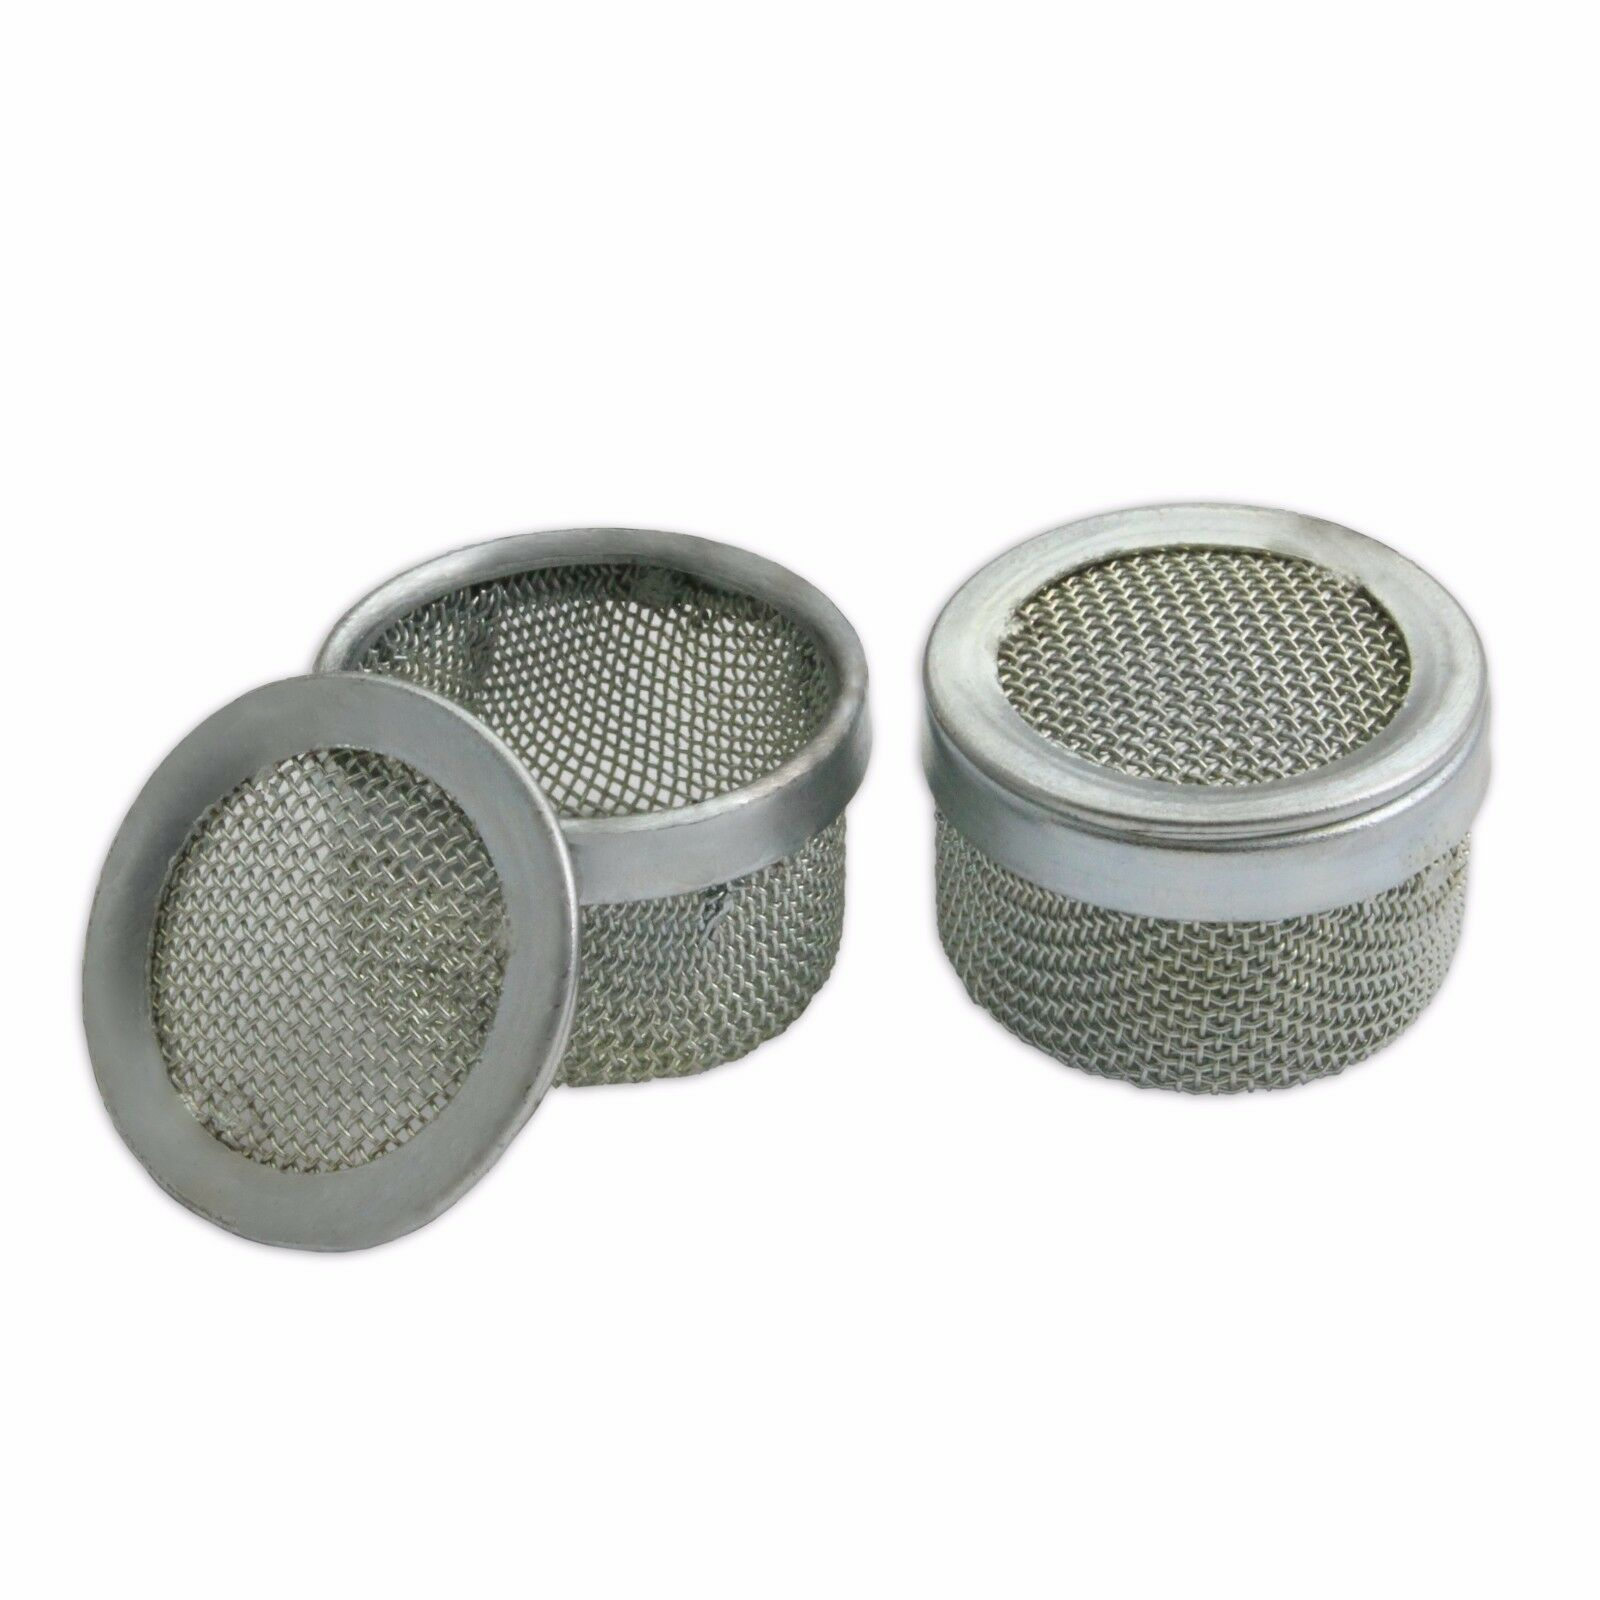 Mini Steel Ultrasonic Cleaning Basket Parts Holder Mesh